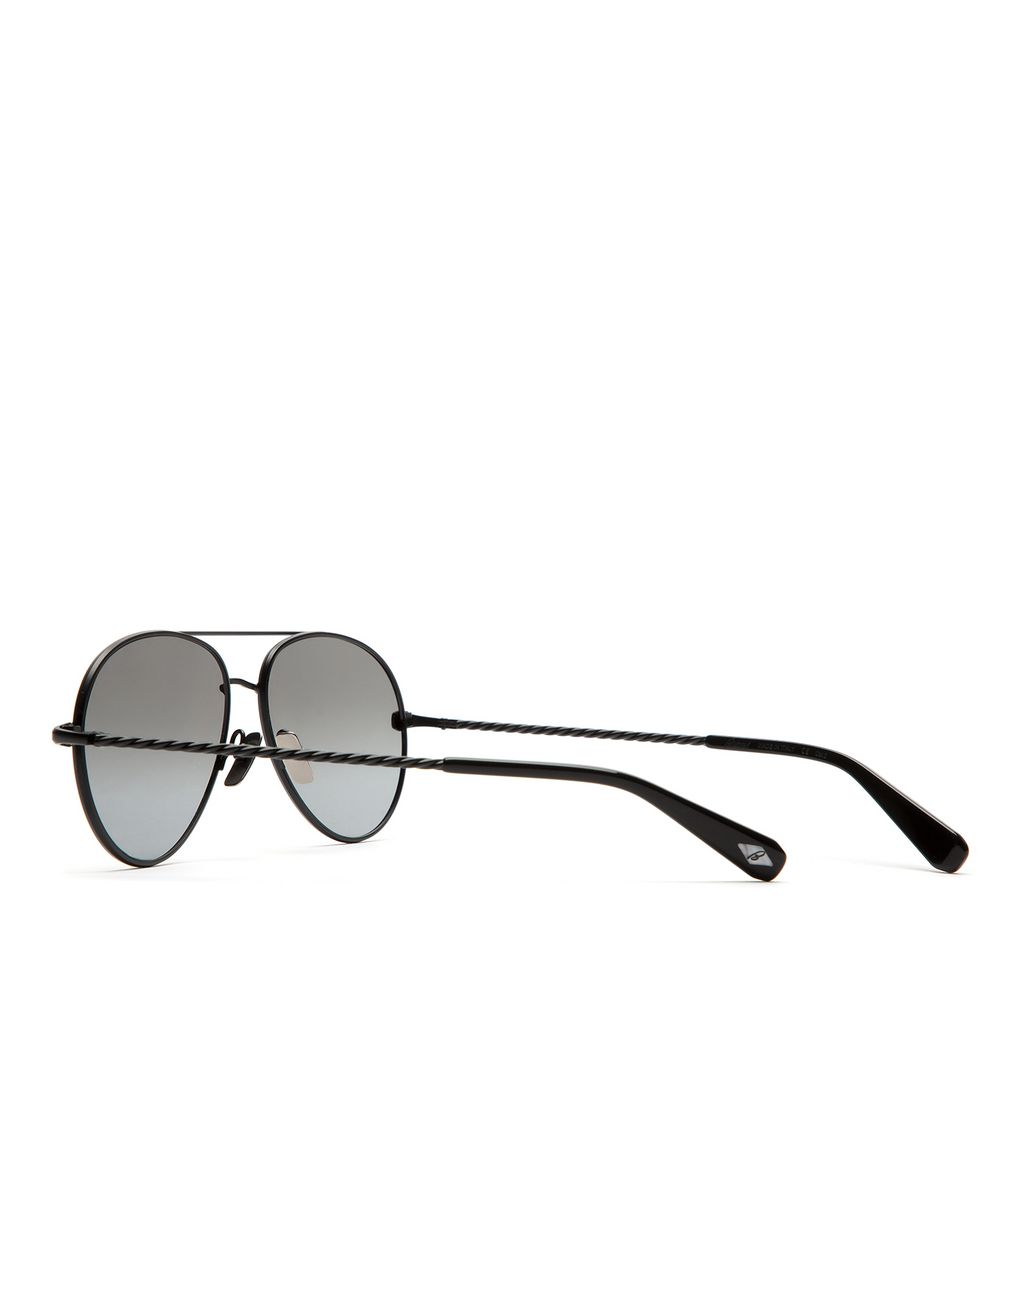 BRIONI Silver Black Aviator Sunglasses with Gray Lenses Sunglasses U d